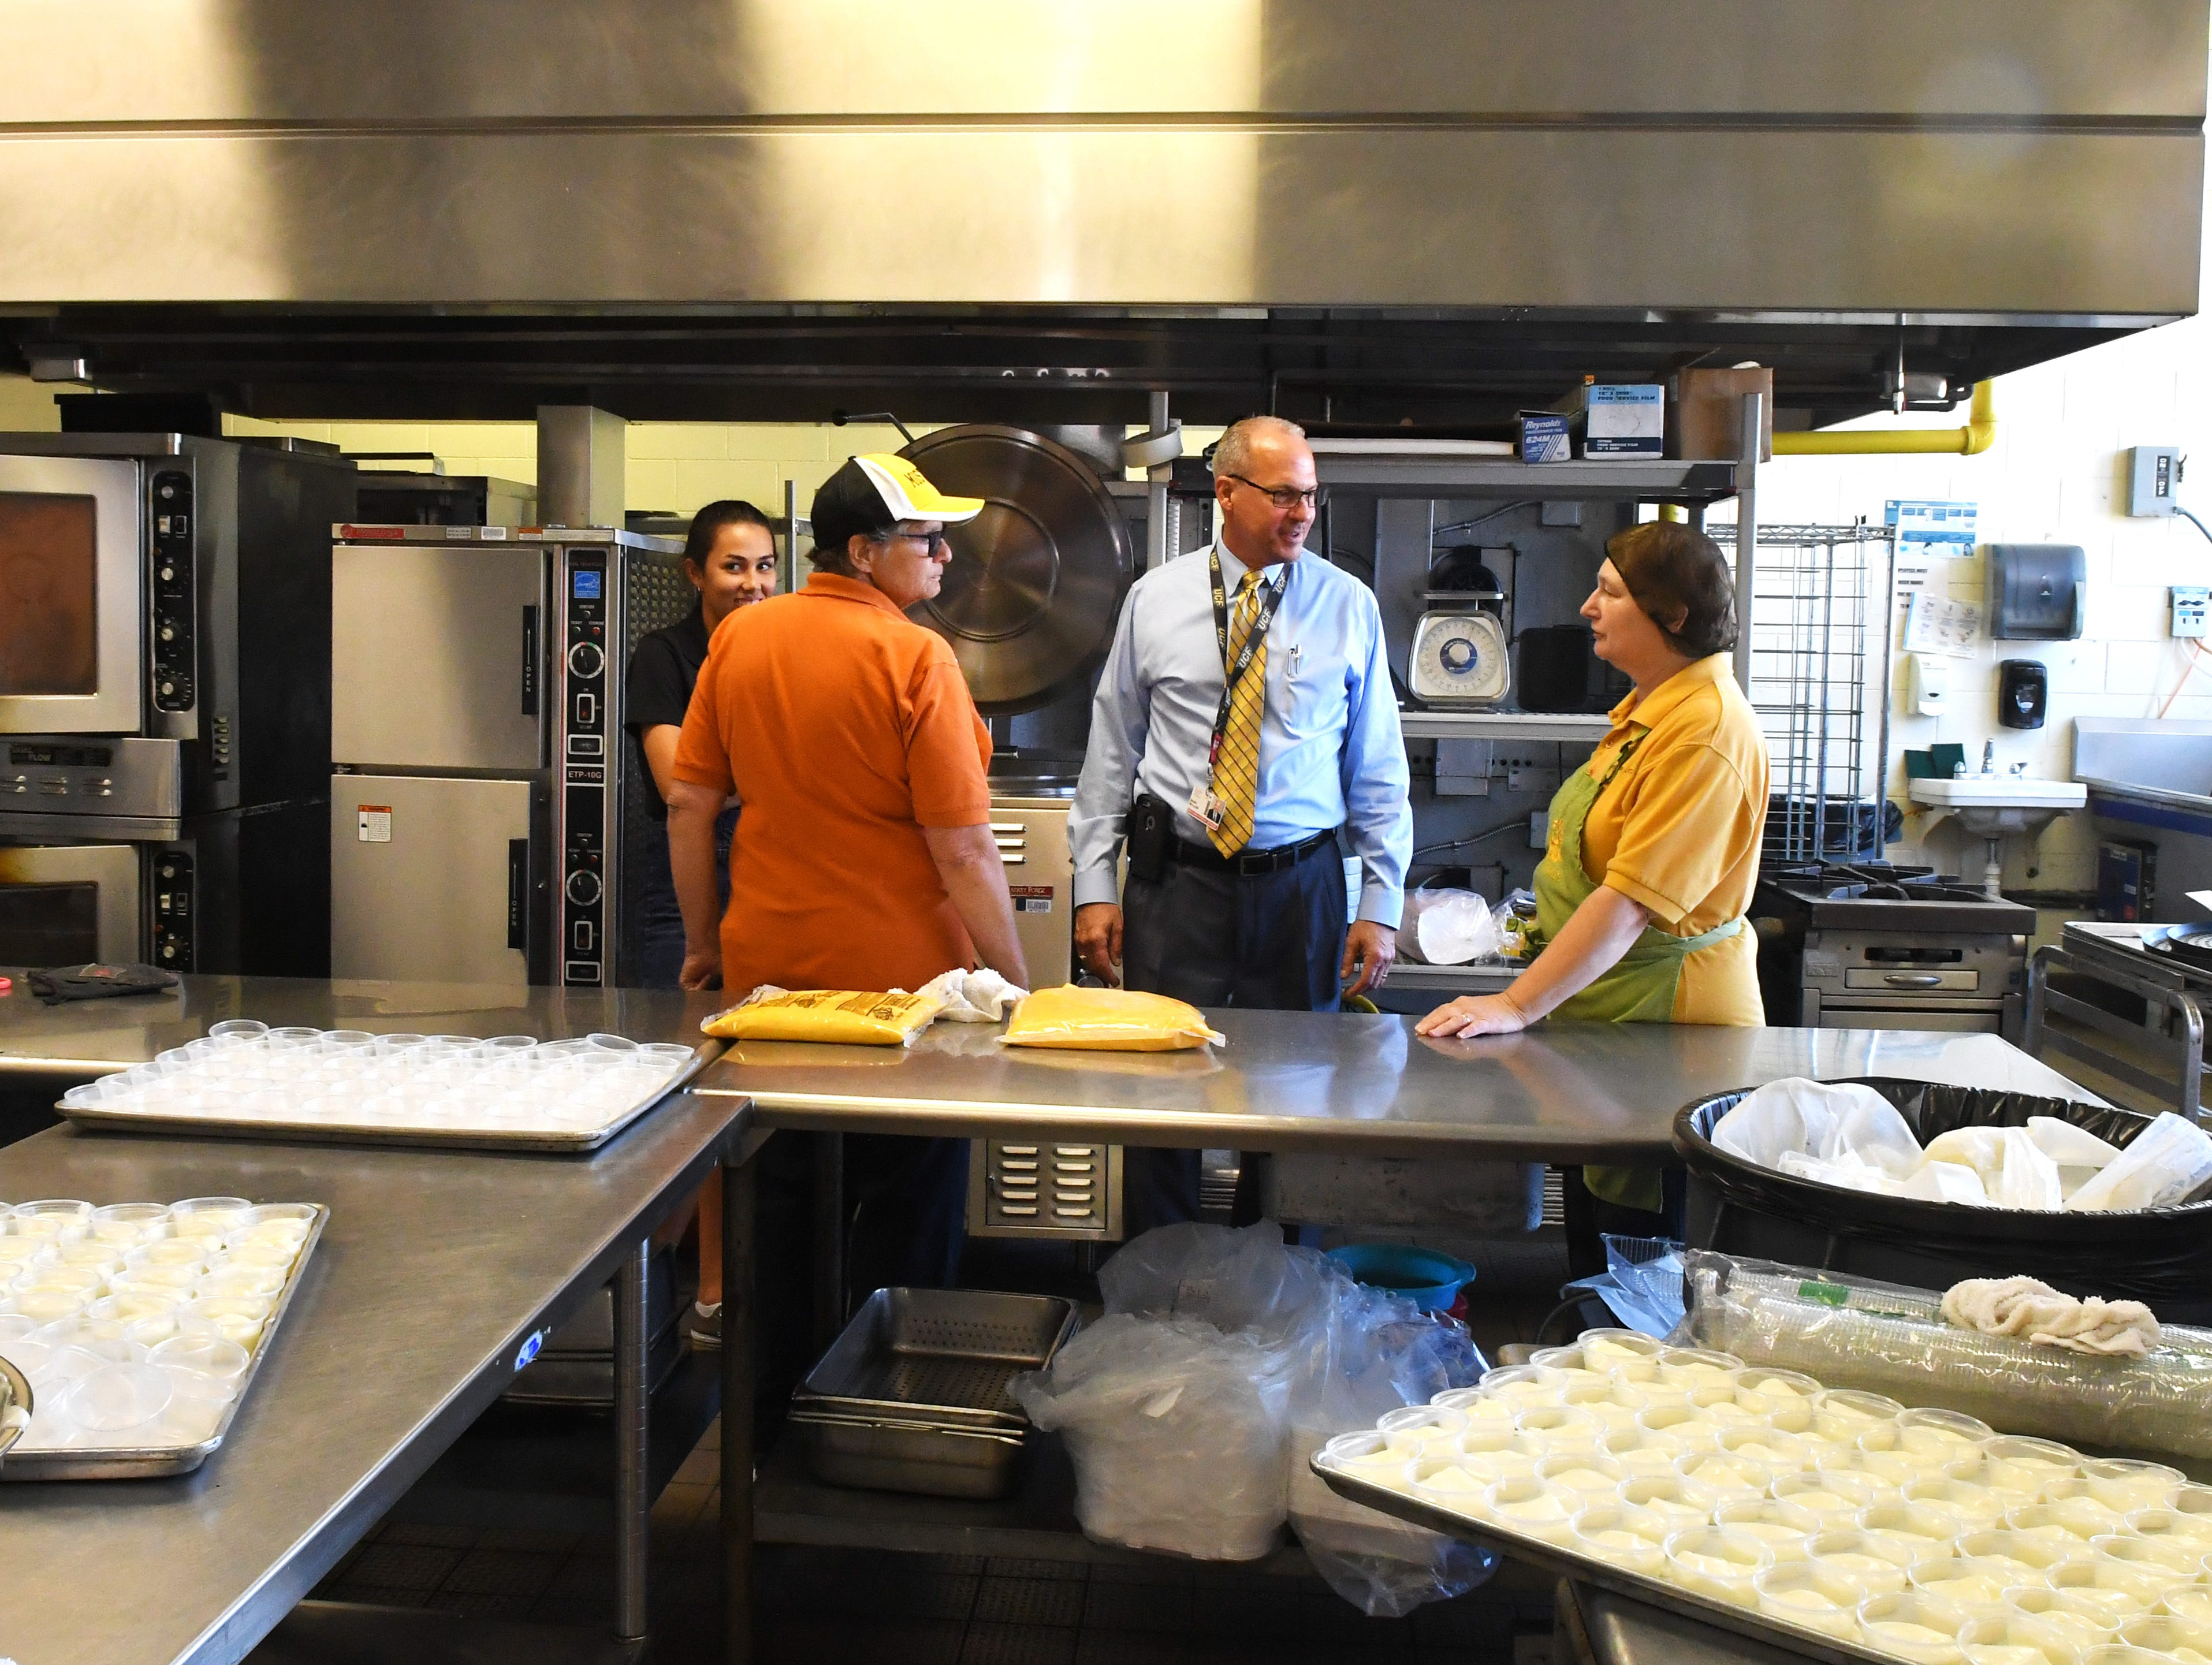 A tour of the kitchen area. Brevard County Superintendent of Schools Mark Mullins, Ed.D, was a student for a day at Merritt Island High School on Monday.